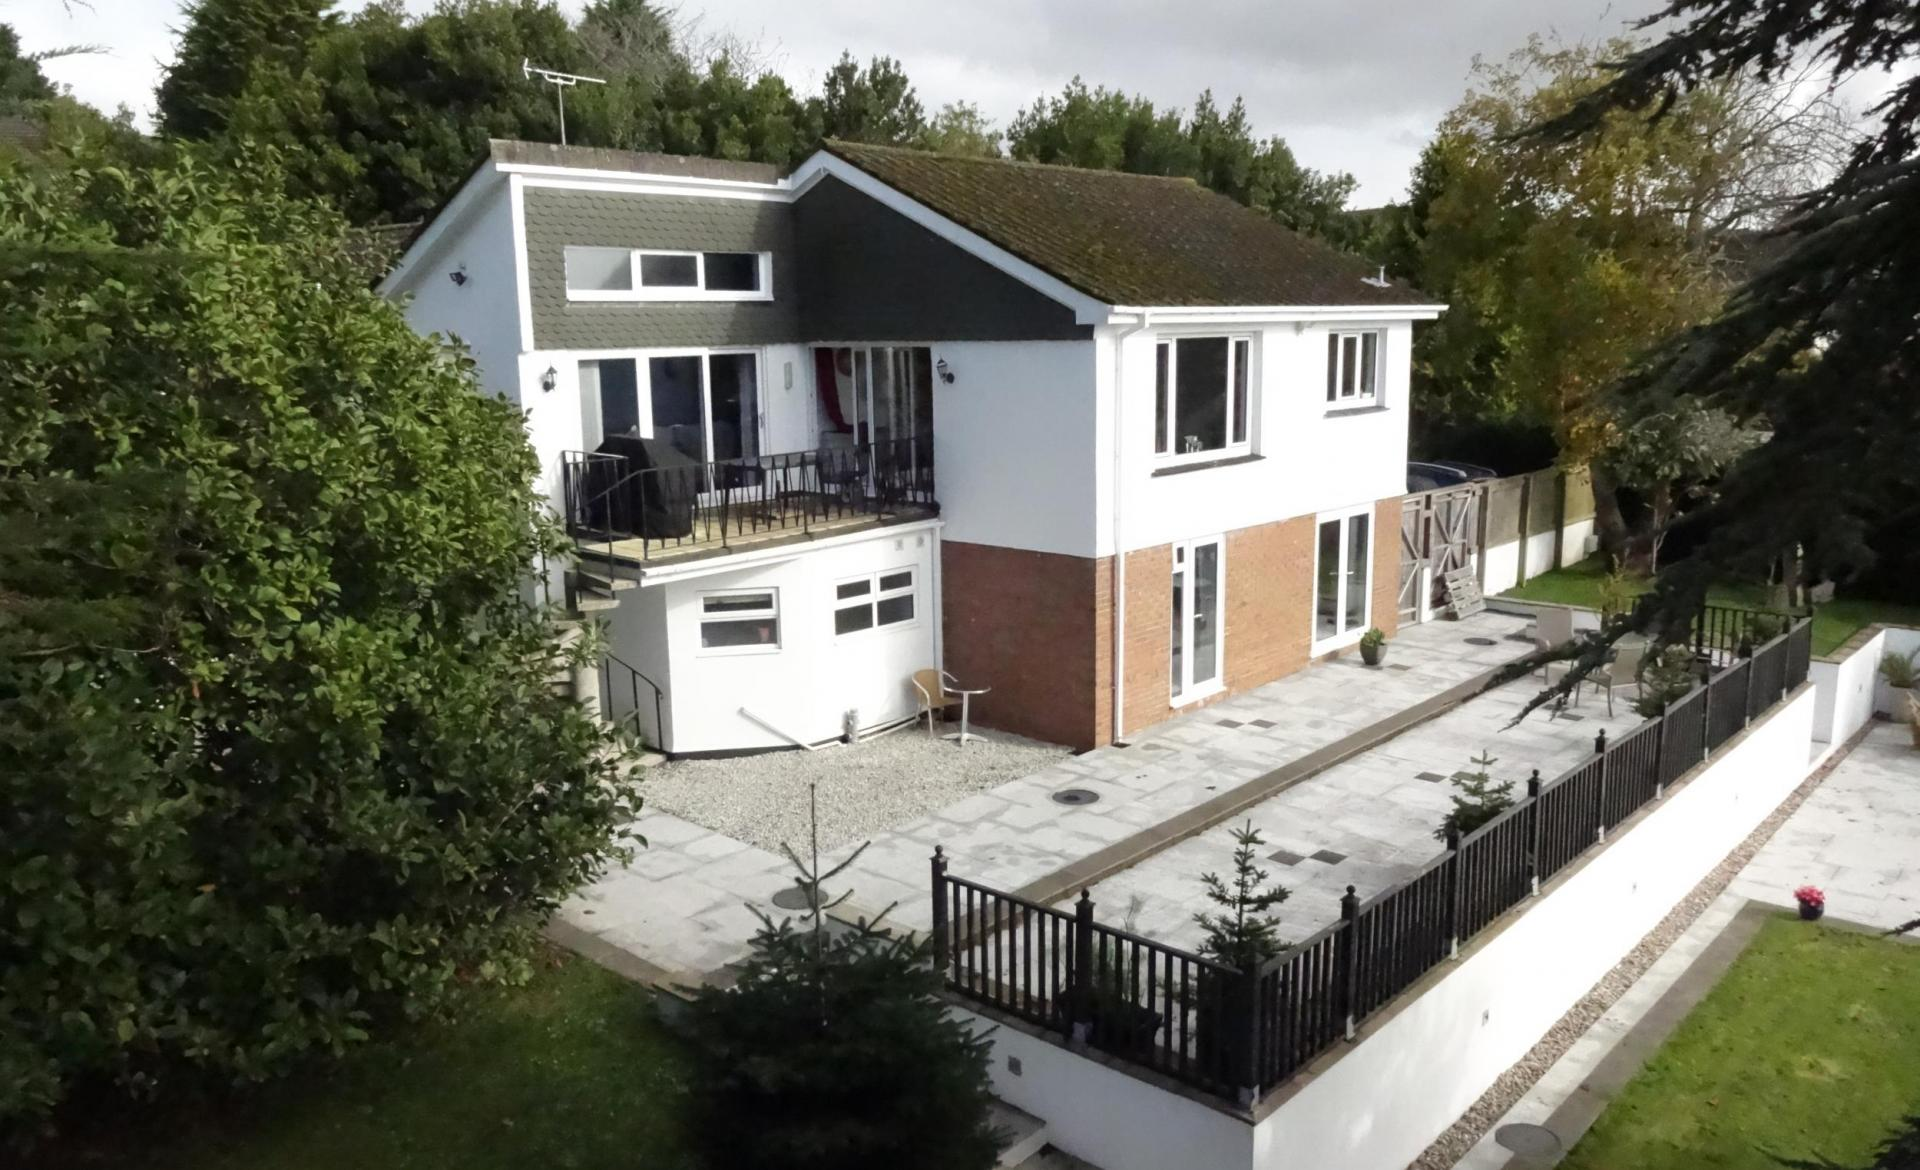 £900,000 - Biscovey, St Austell - 7 bedrooms